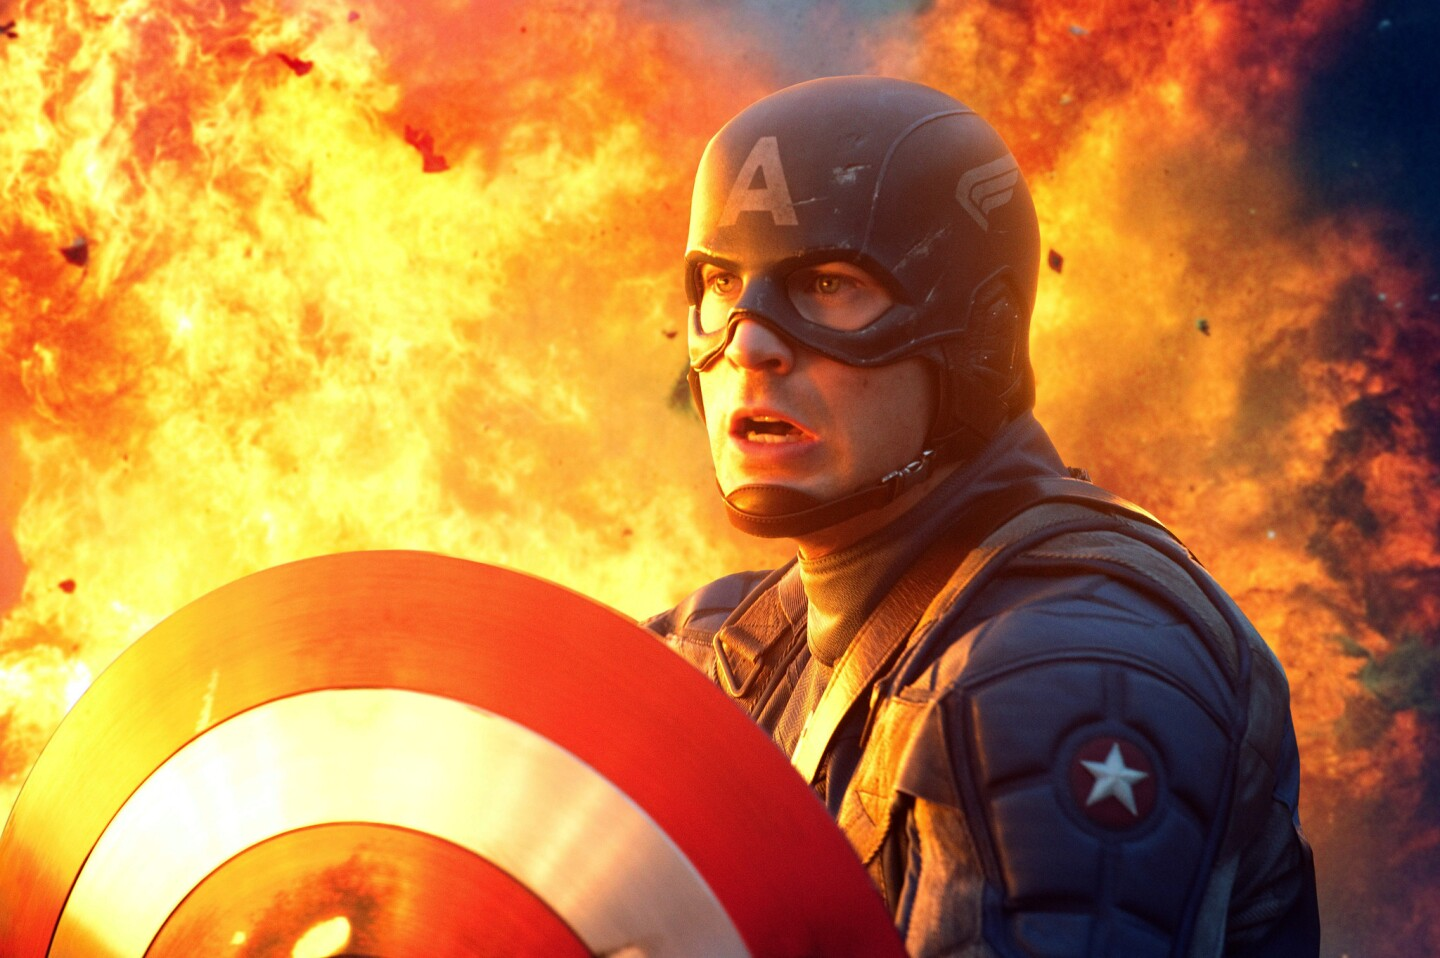 Patriotic plot: After scrawny everyman Steve Rogers (Chris Evans) is deemed unfit for military service during World War II, he signs up for a top-secret project that physically transforms him into a Nazi-fighting superhero.